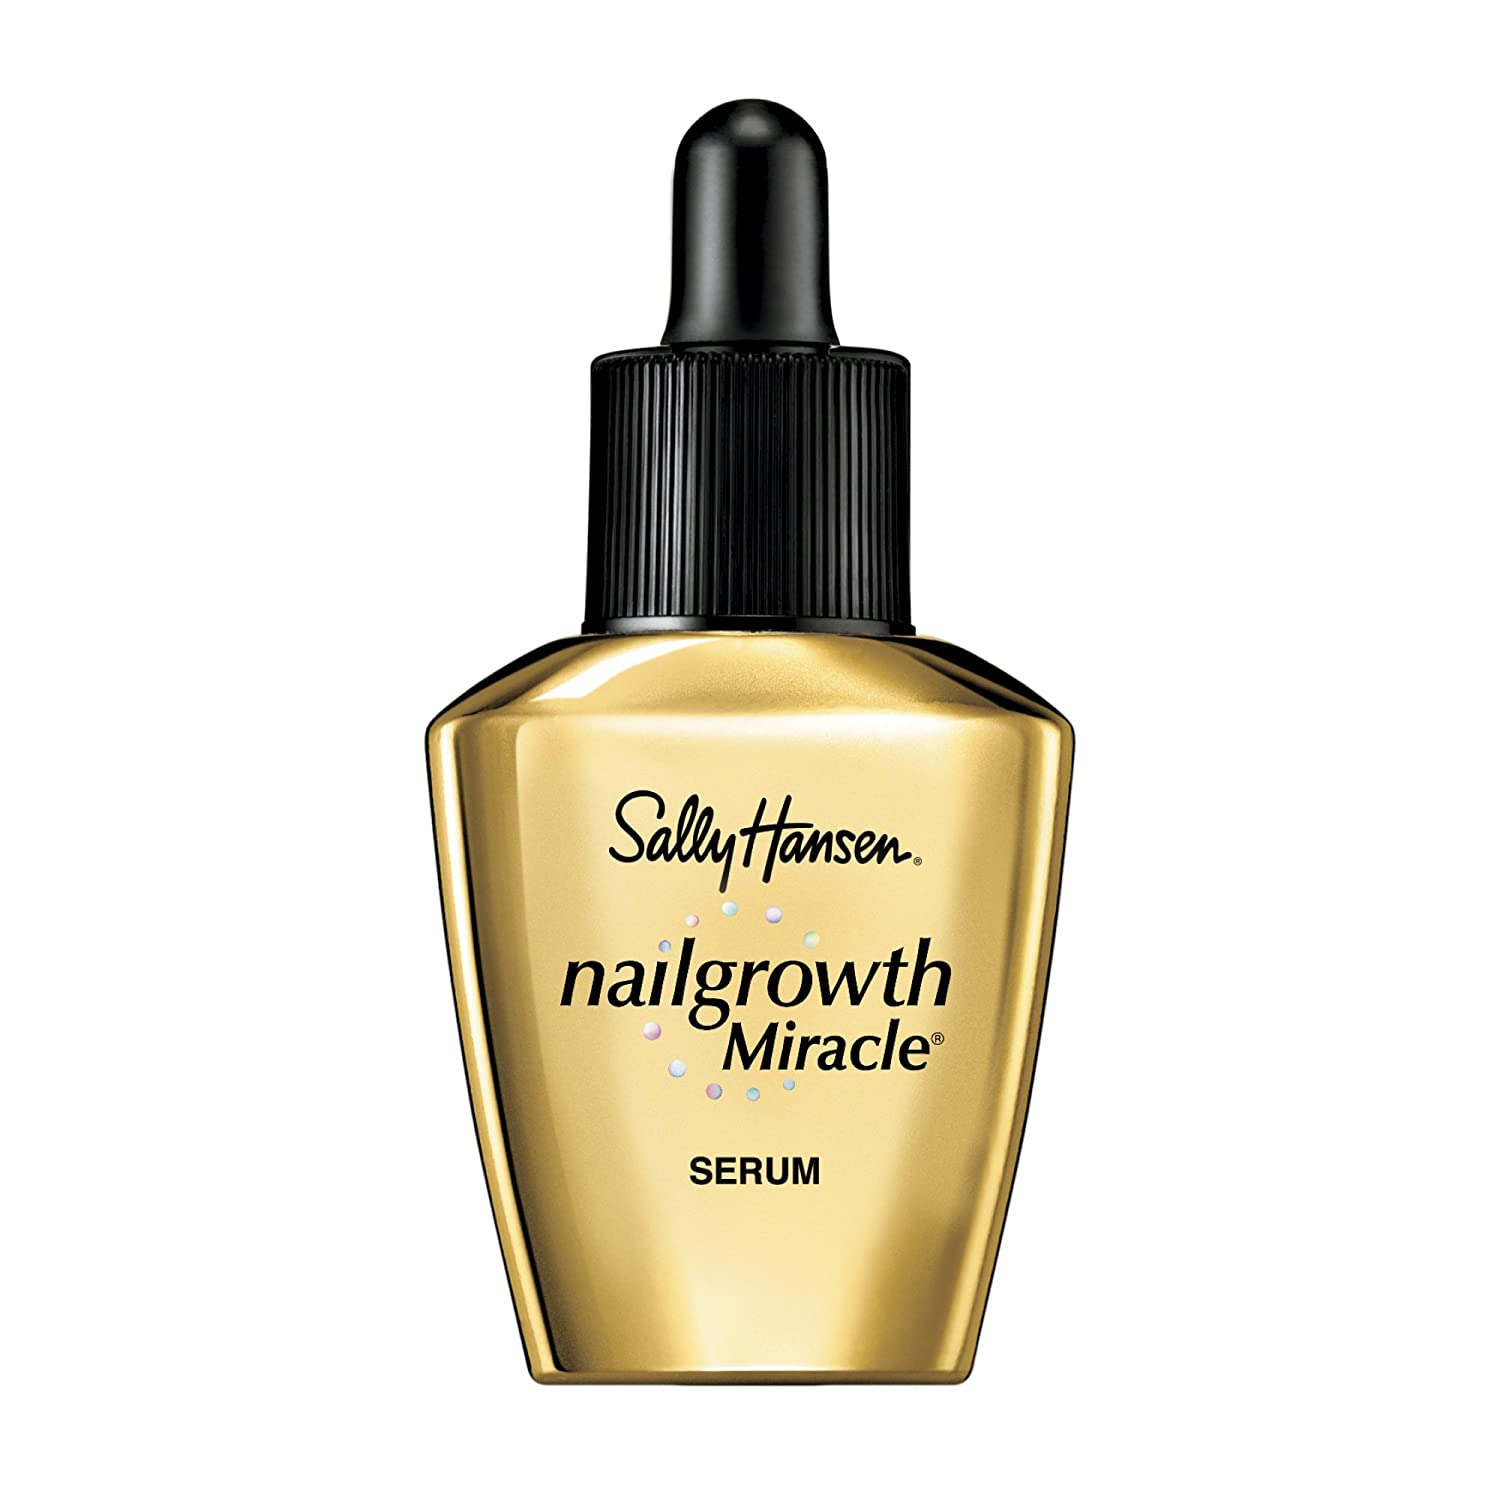 Sally Hansen - Nailgrowth Miracle Serum Coty 30021913000